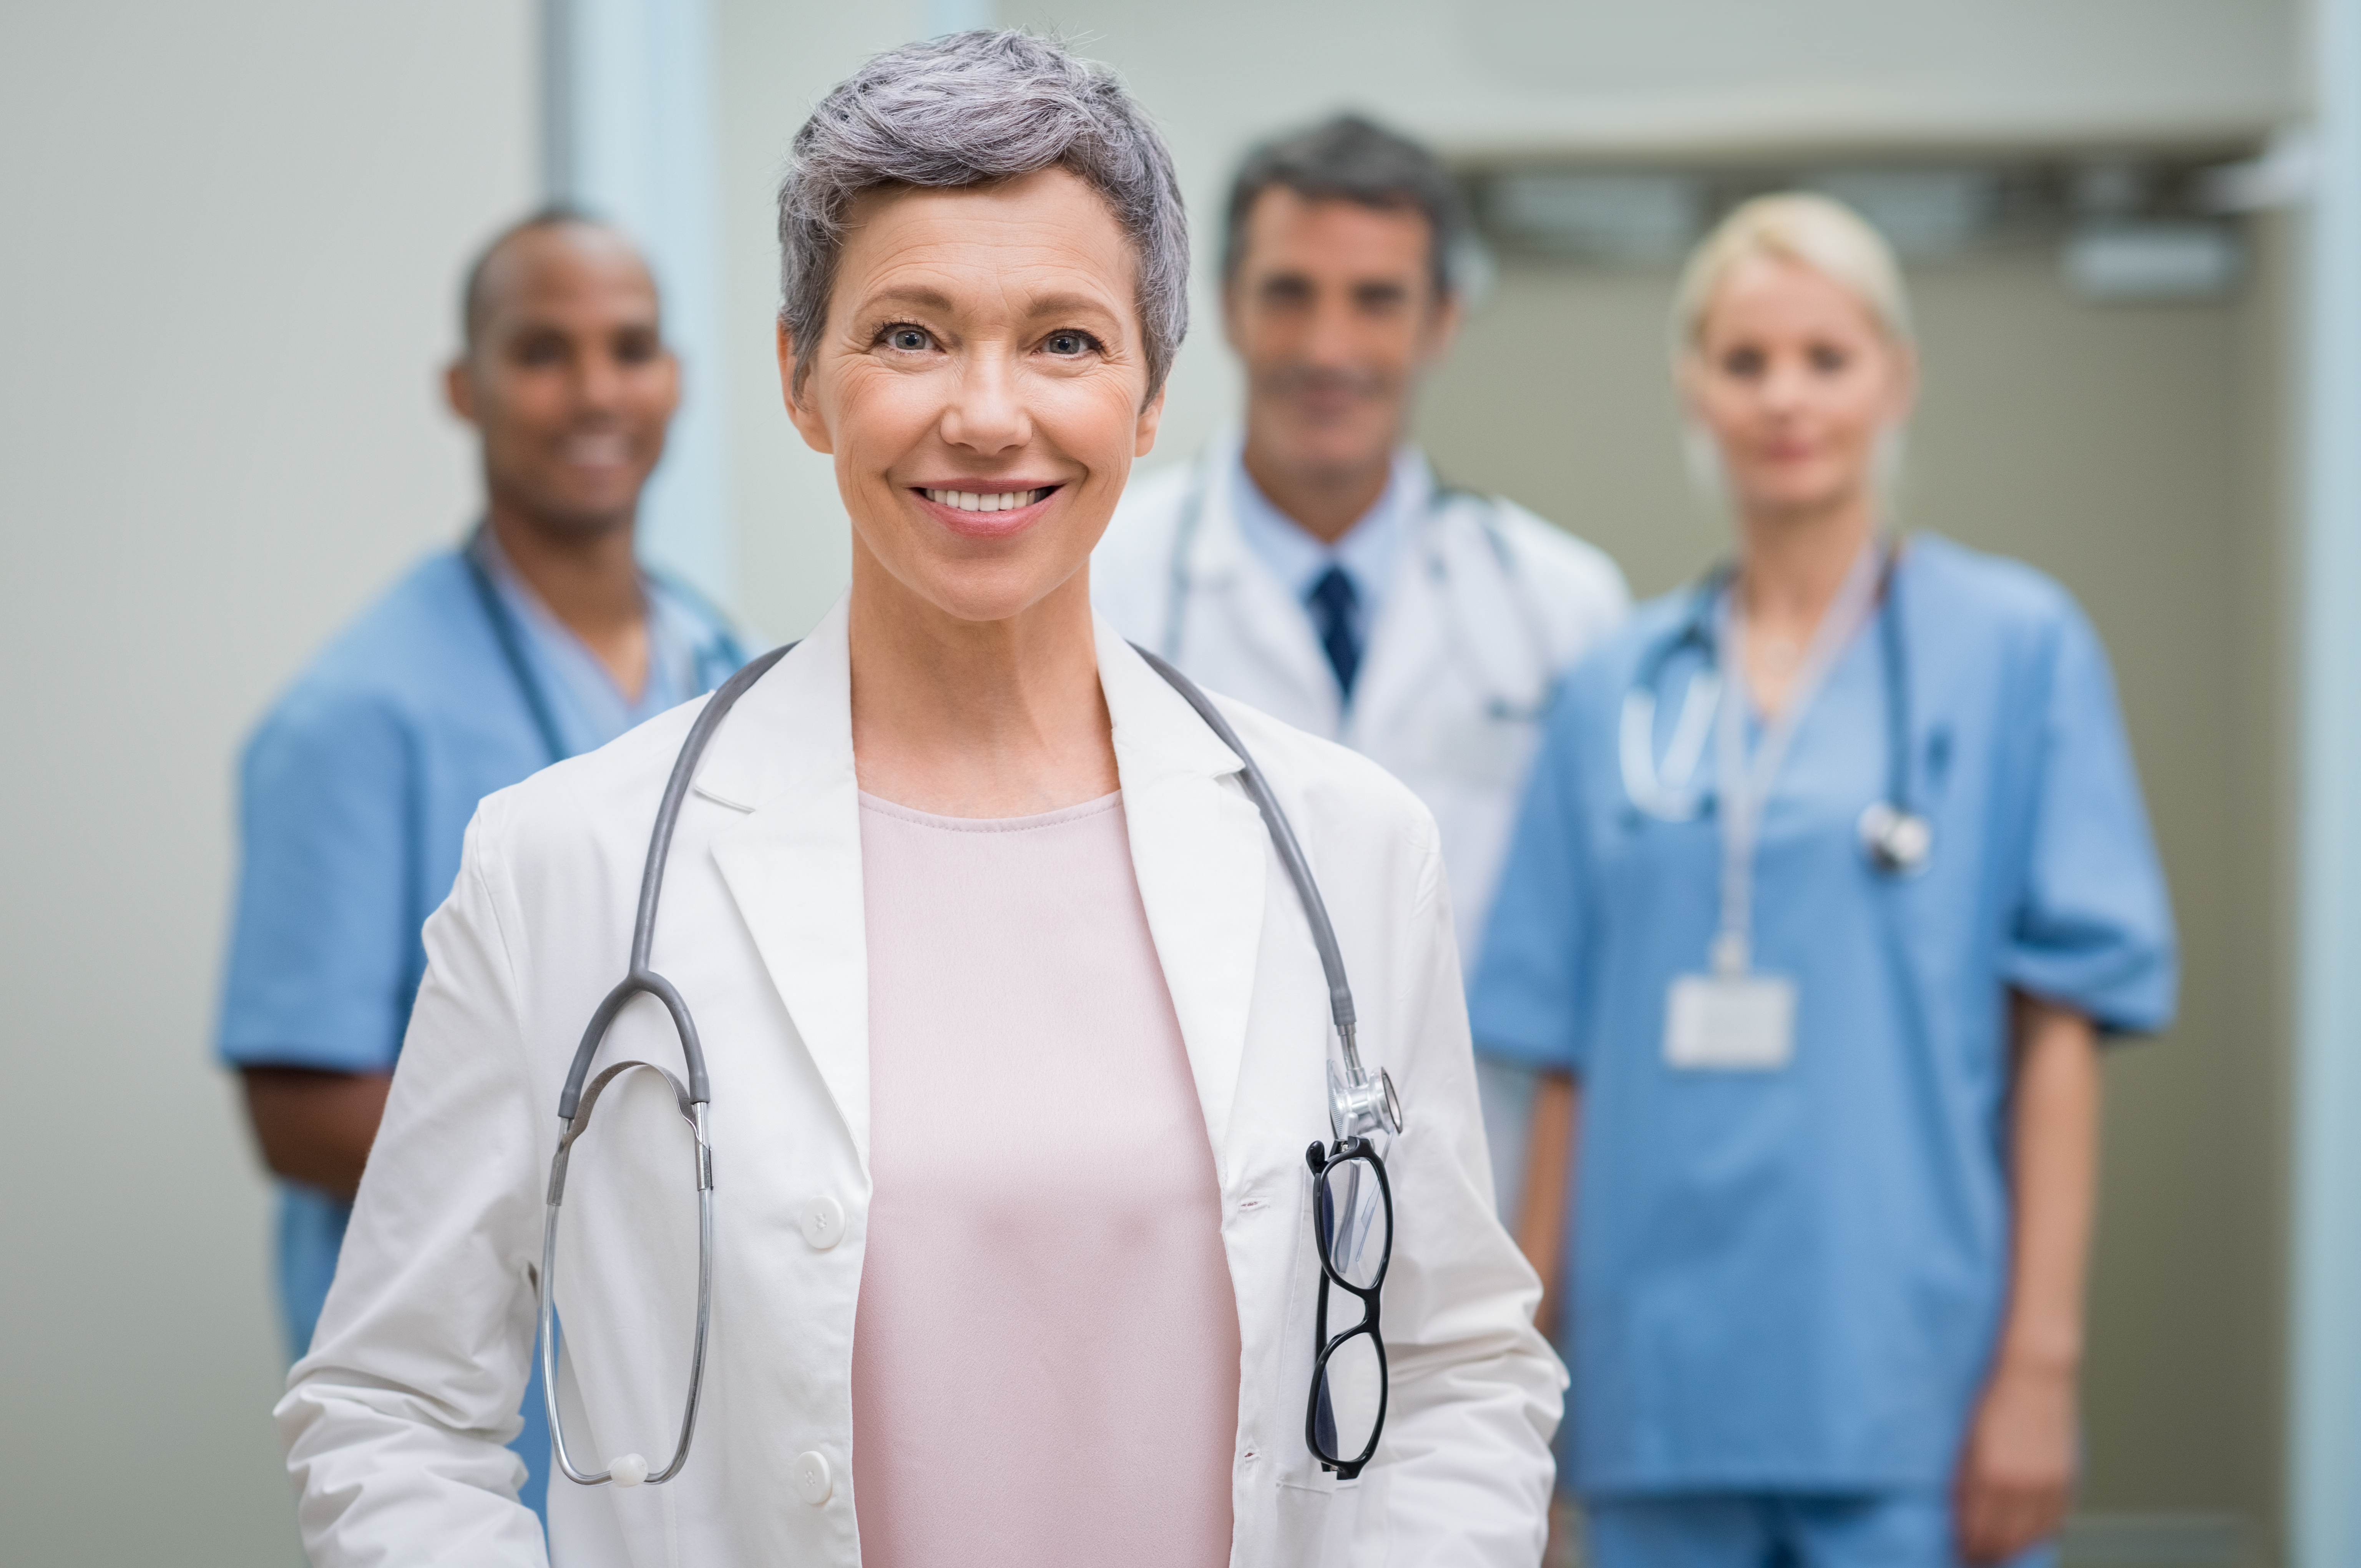 Photo of a female nurse with gray hair smiling, other nurses are out of focus in the background